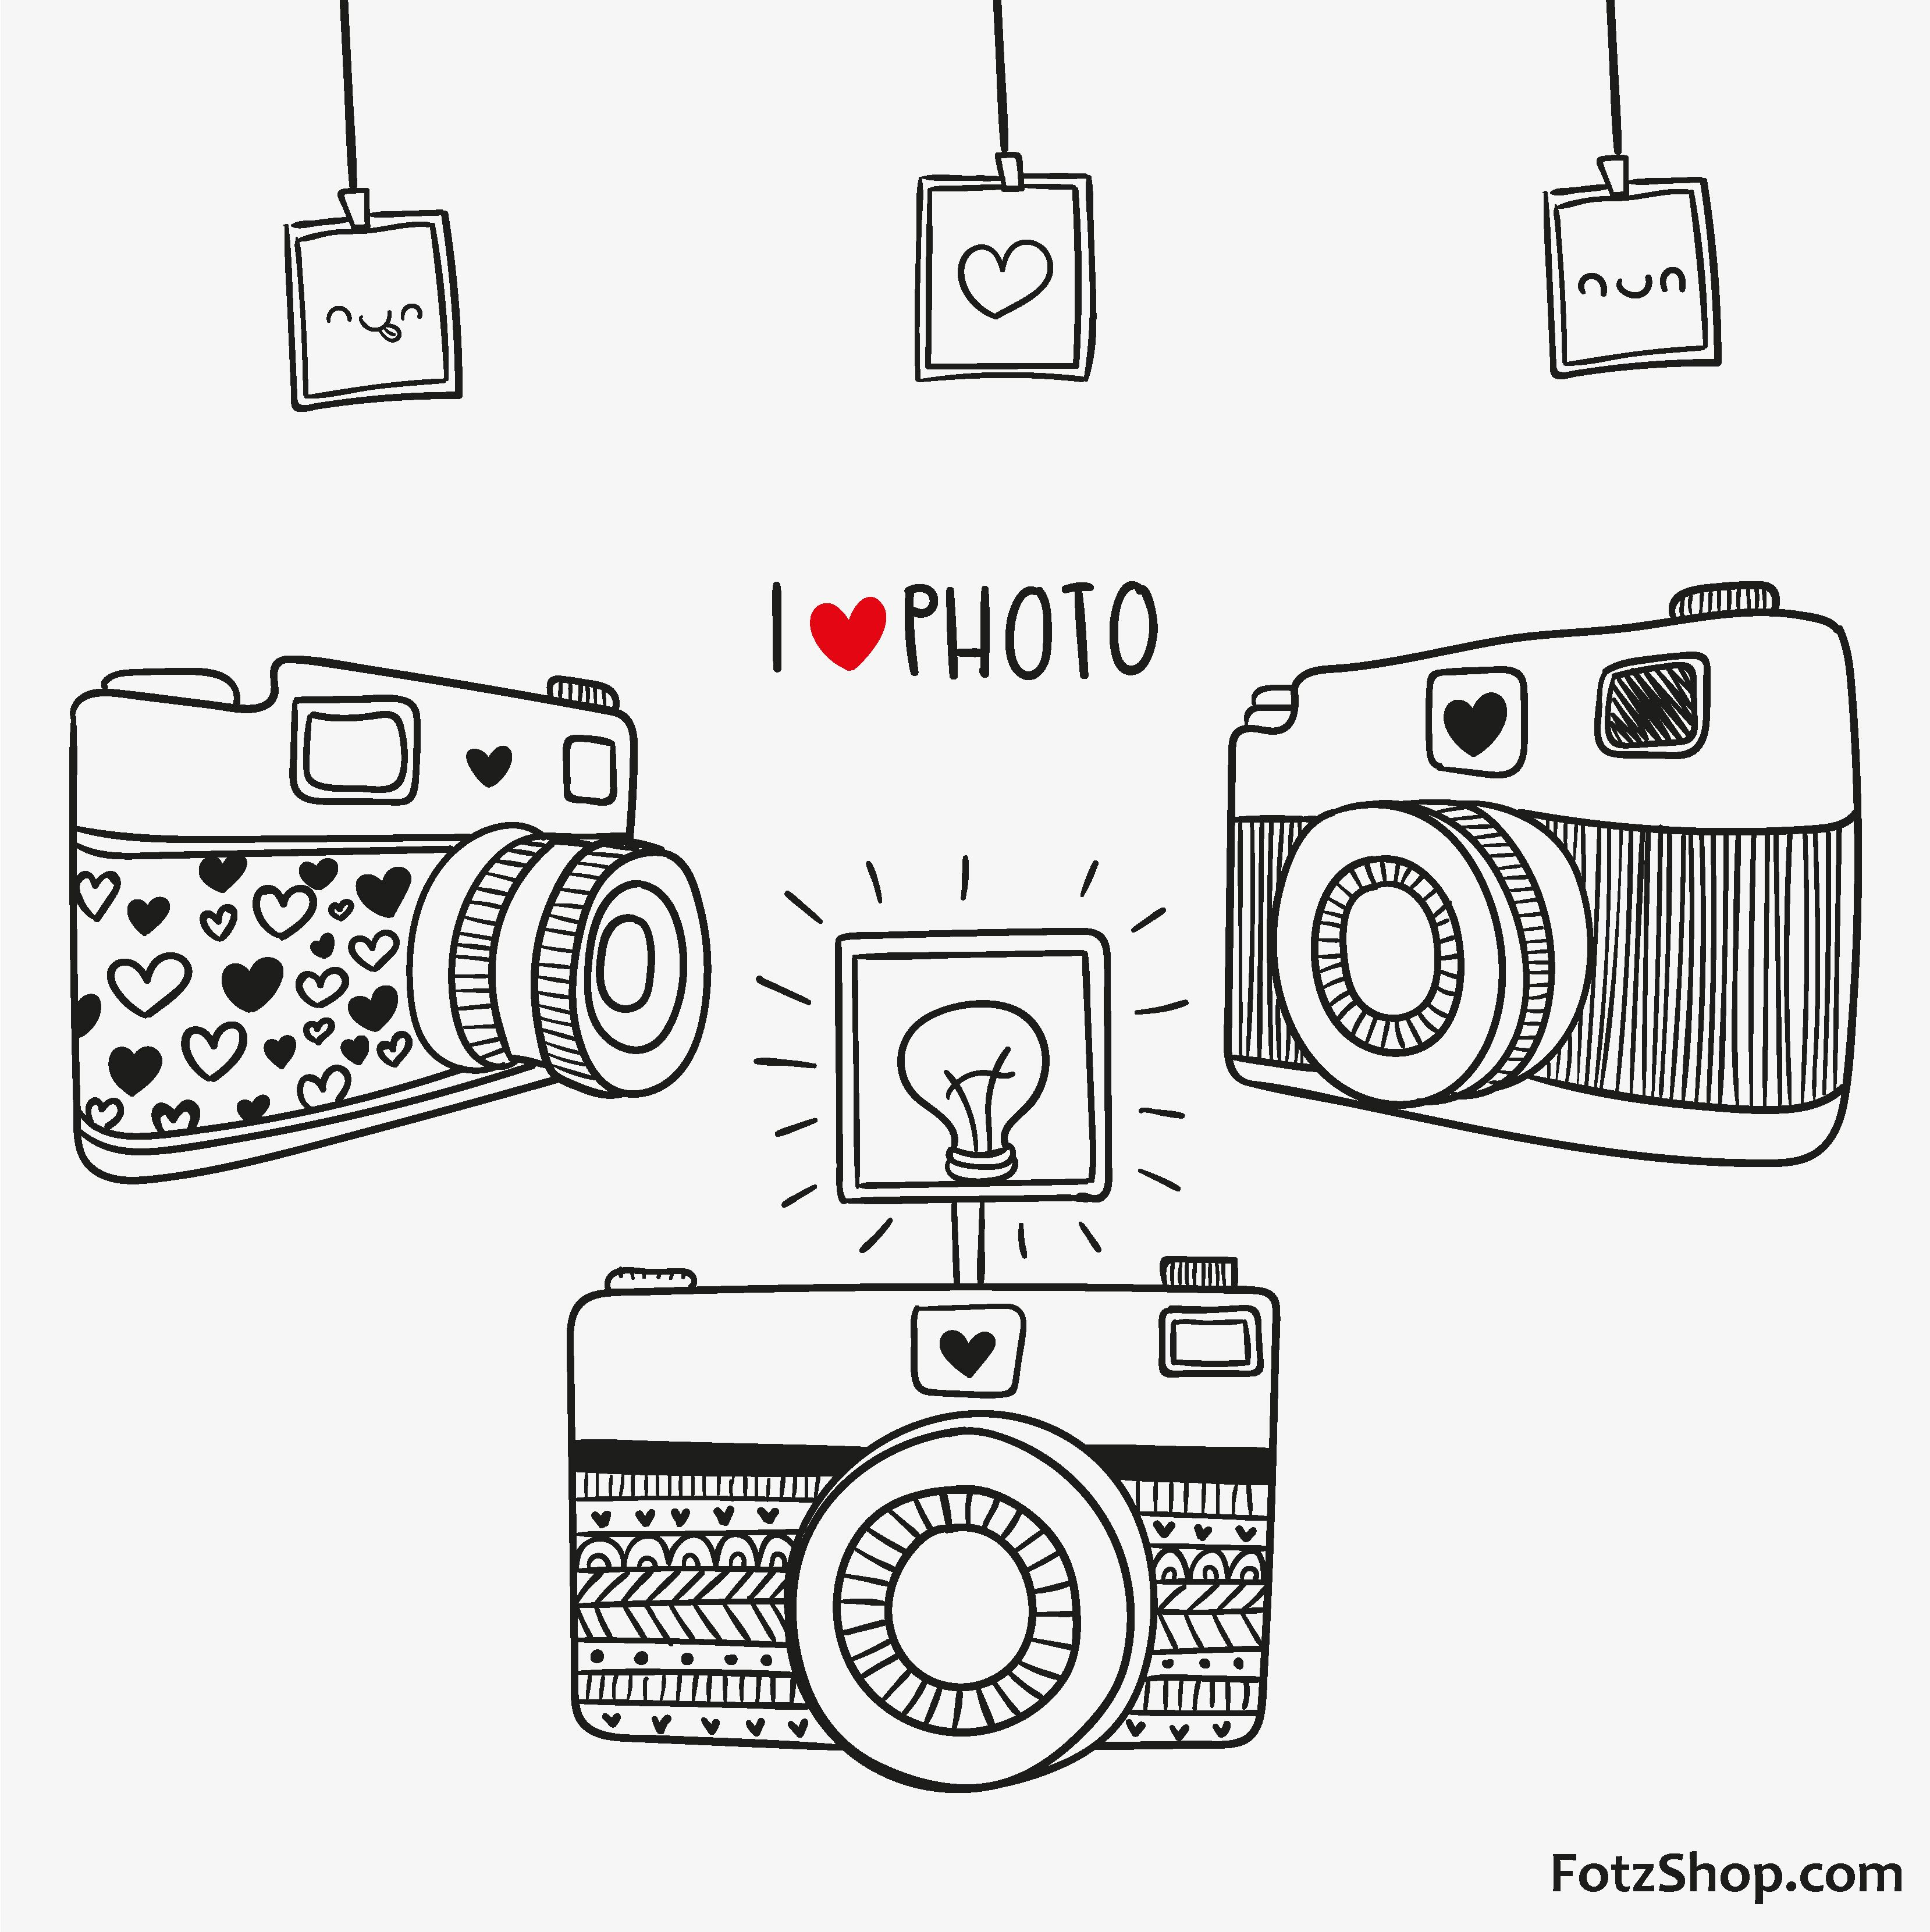 clipart stock Fotzshop dibujos in camera. Drawing photography easy